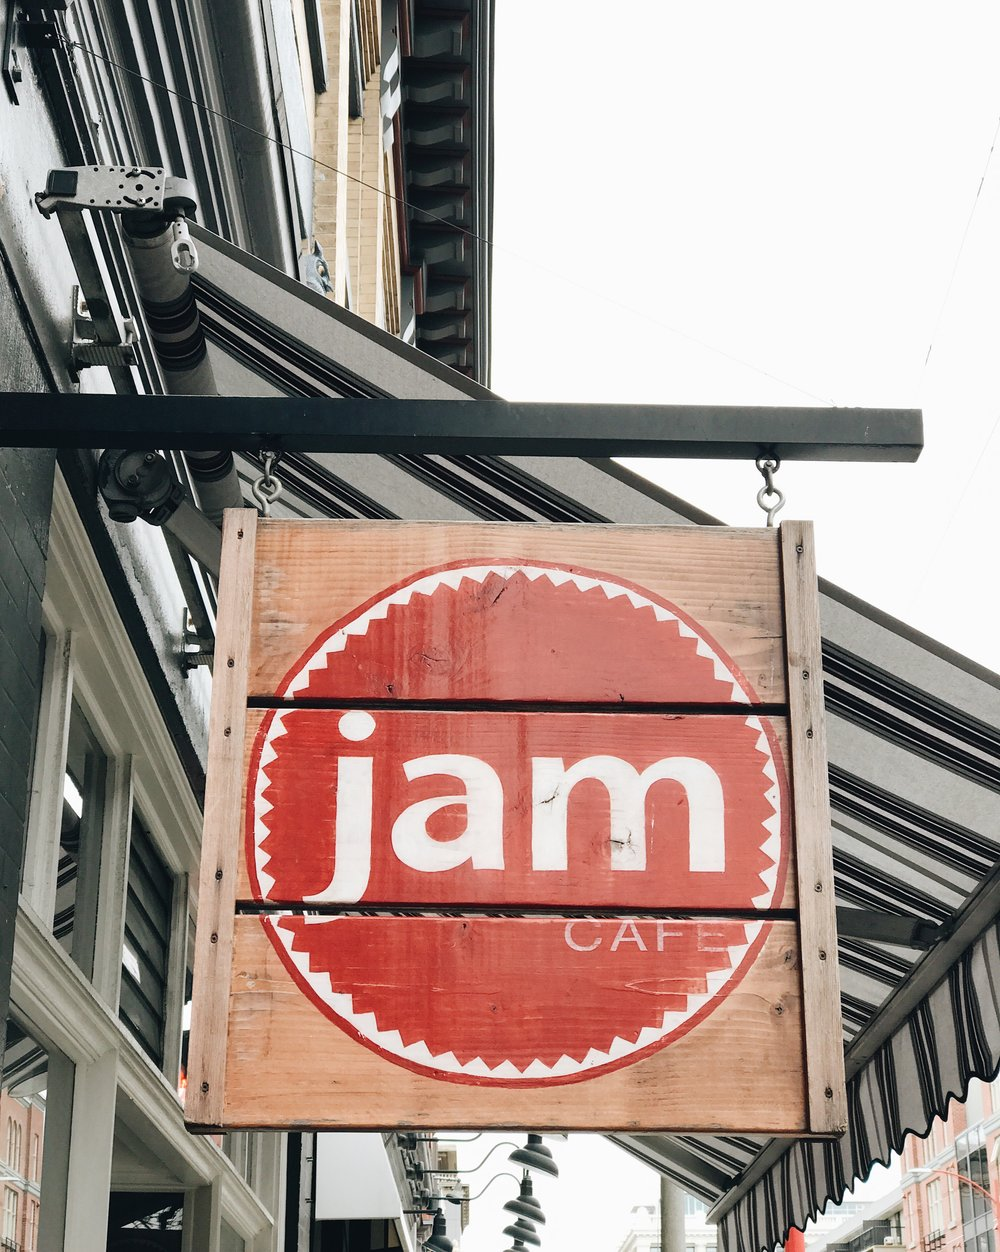 JAM Old Town Cafe, Victoria BC, Nyla Free Designs Inc.